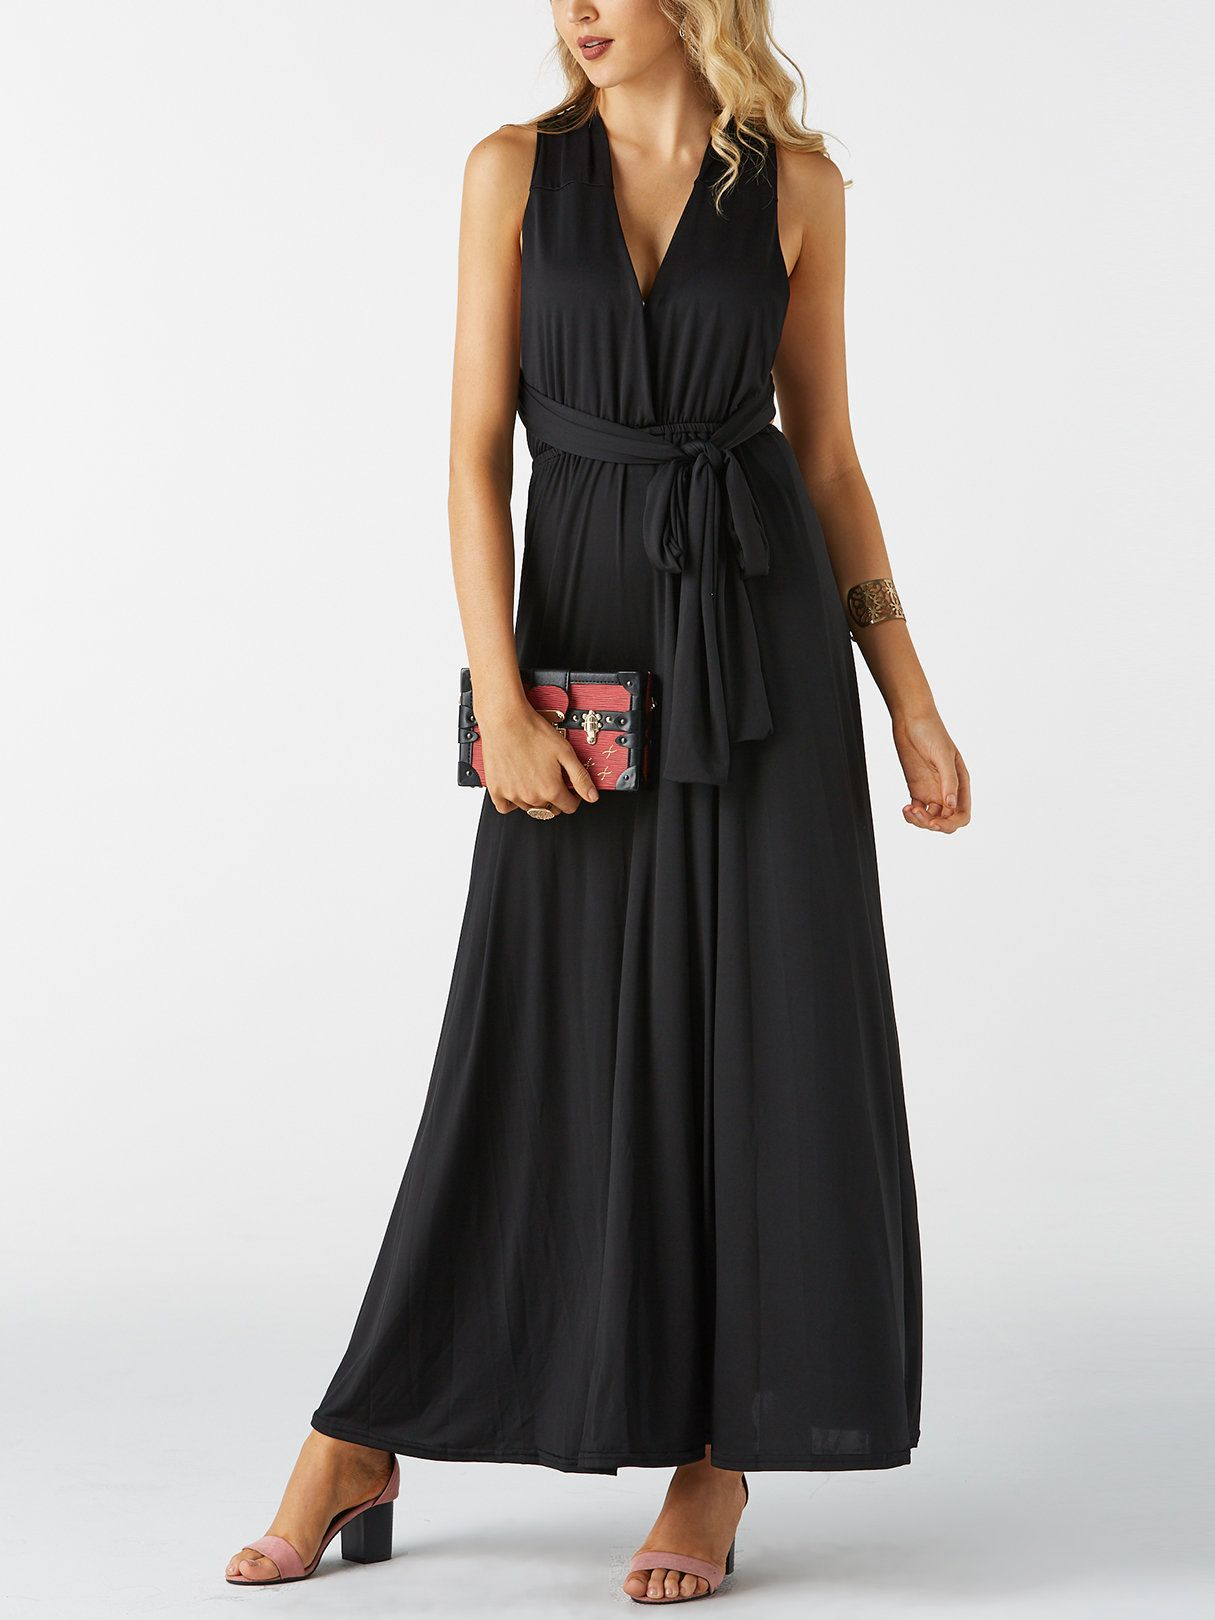 This multiway long party dress is the top in our wishlists it